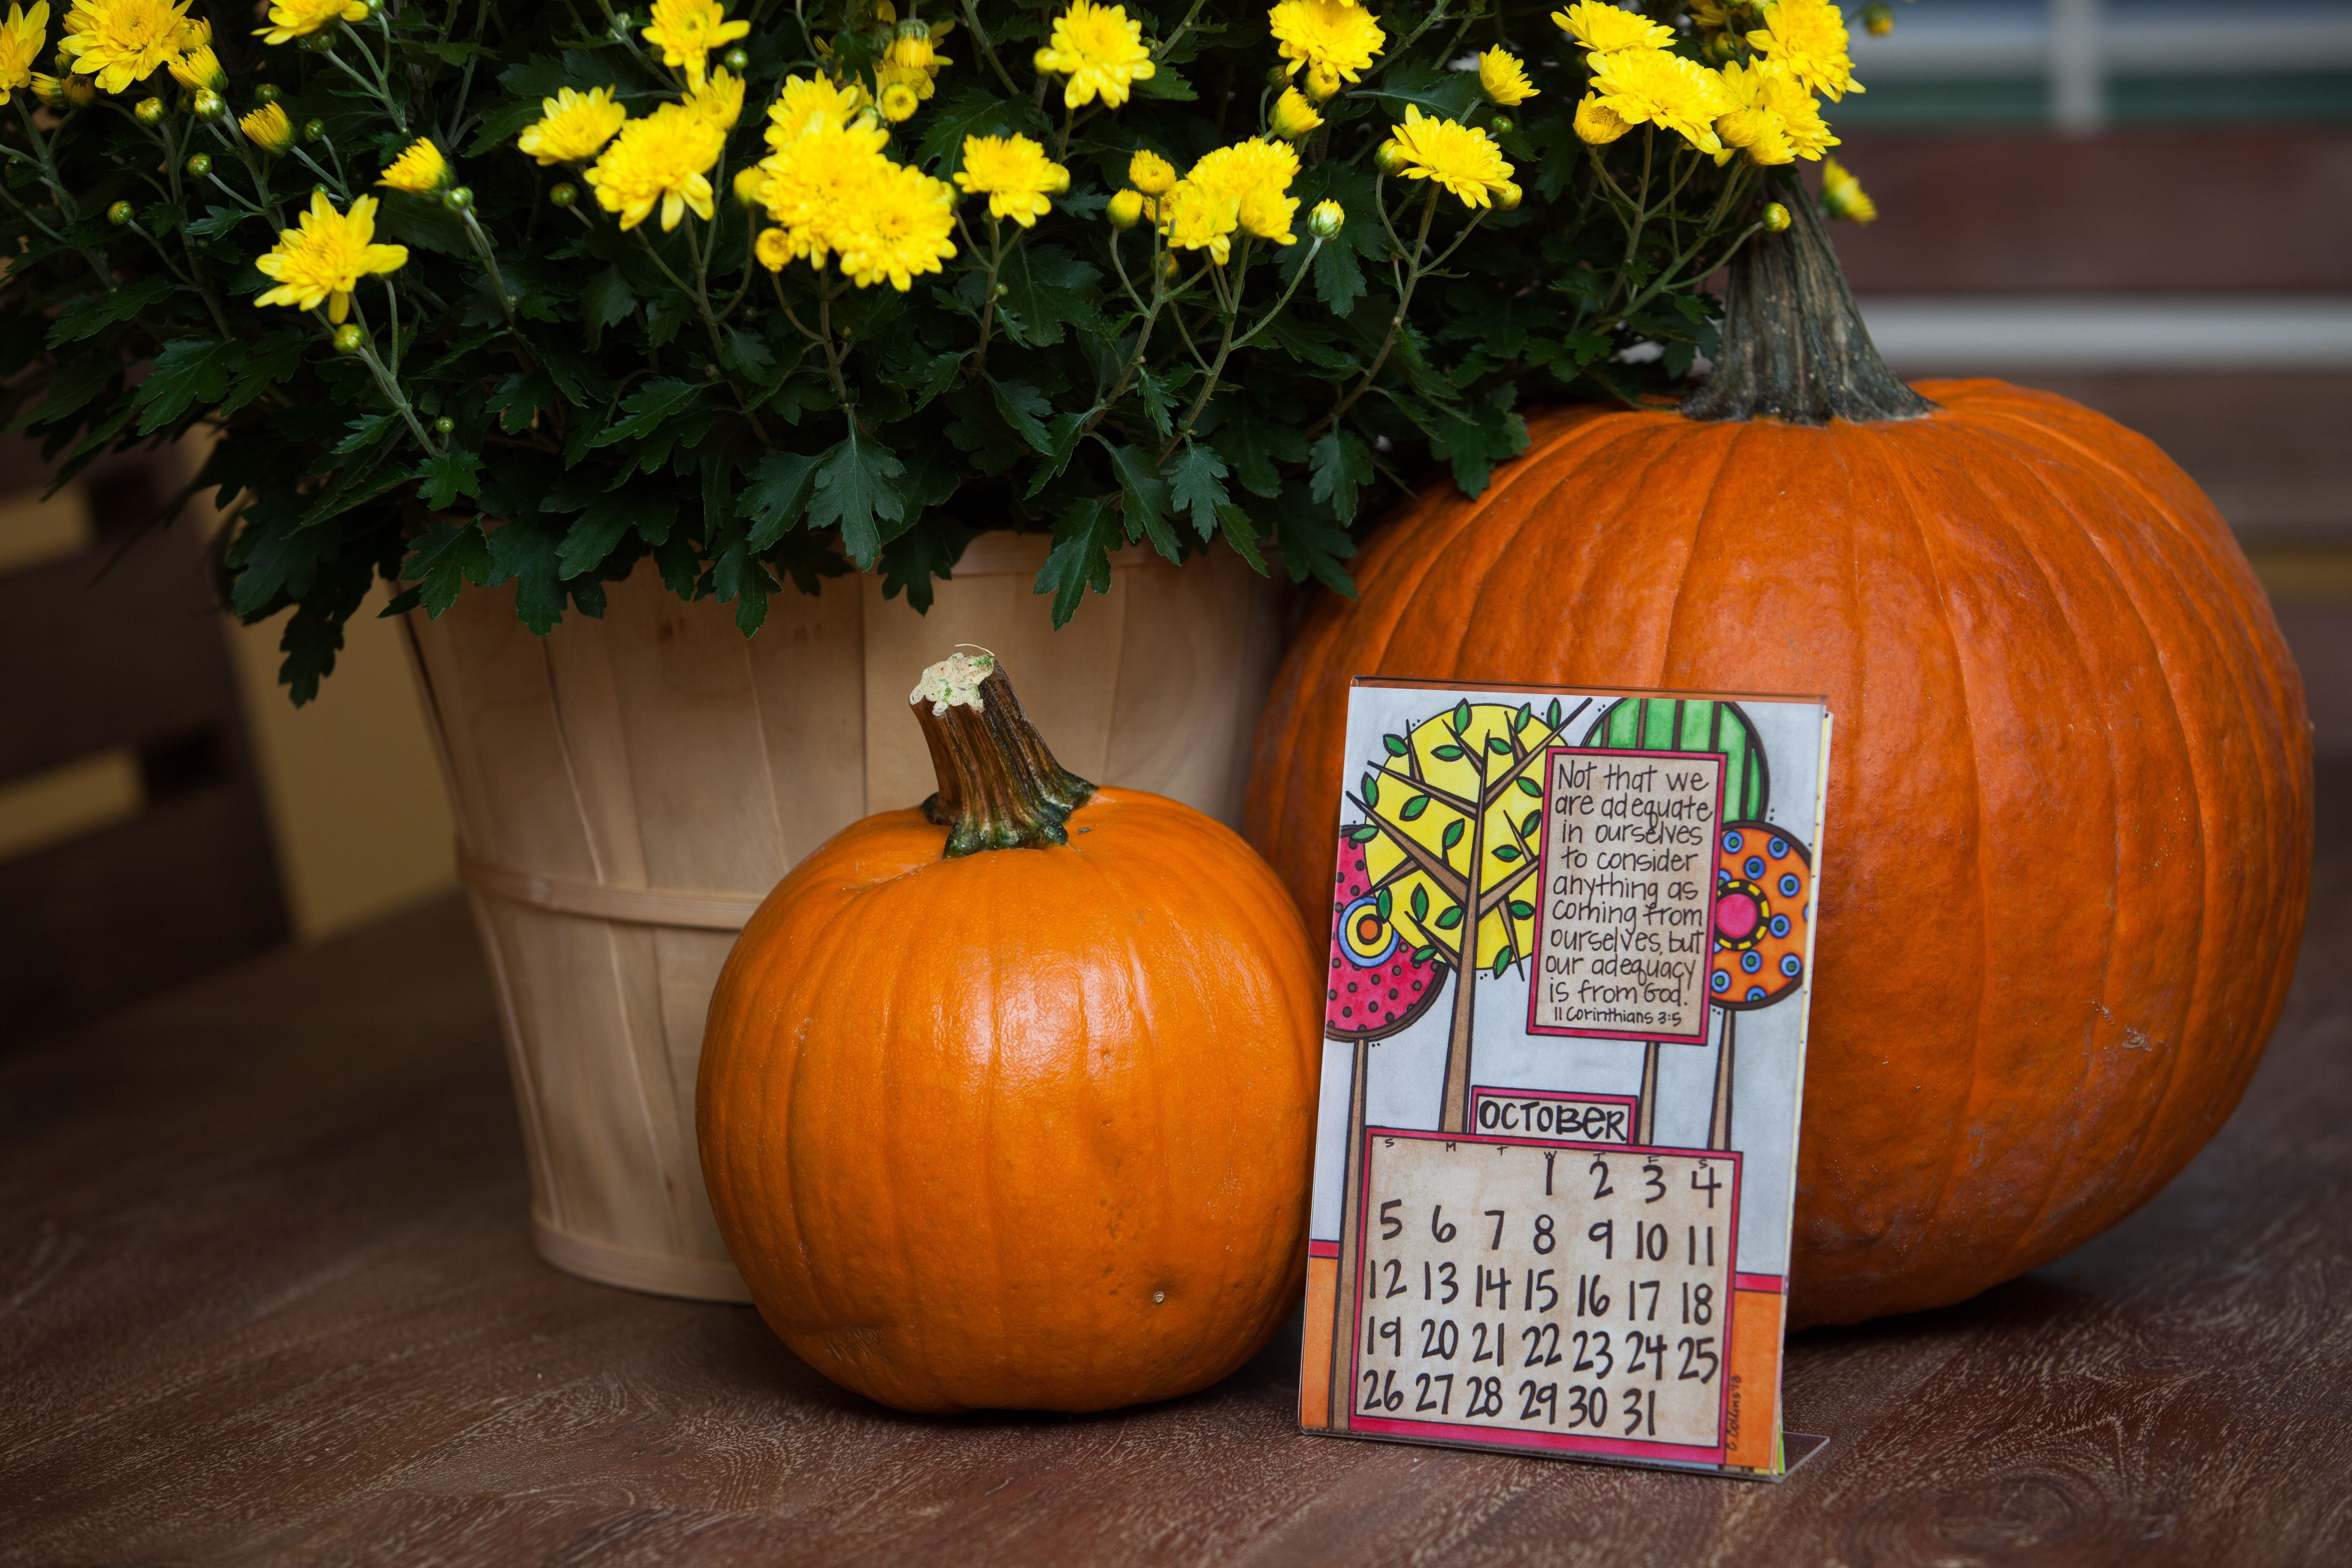 October 2014 from Cary Collins Designs new Scripture Calendar!